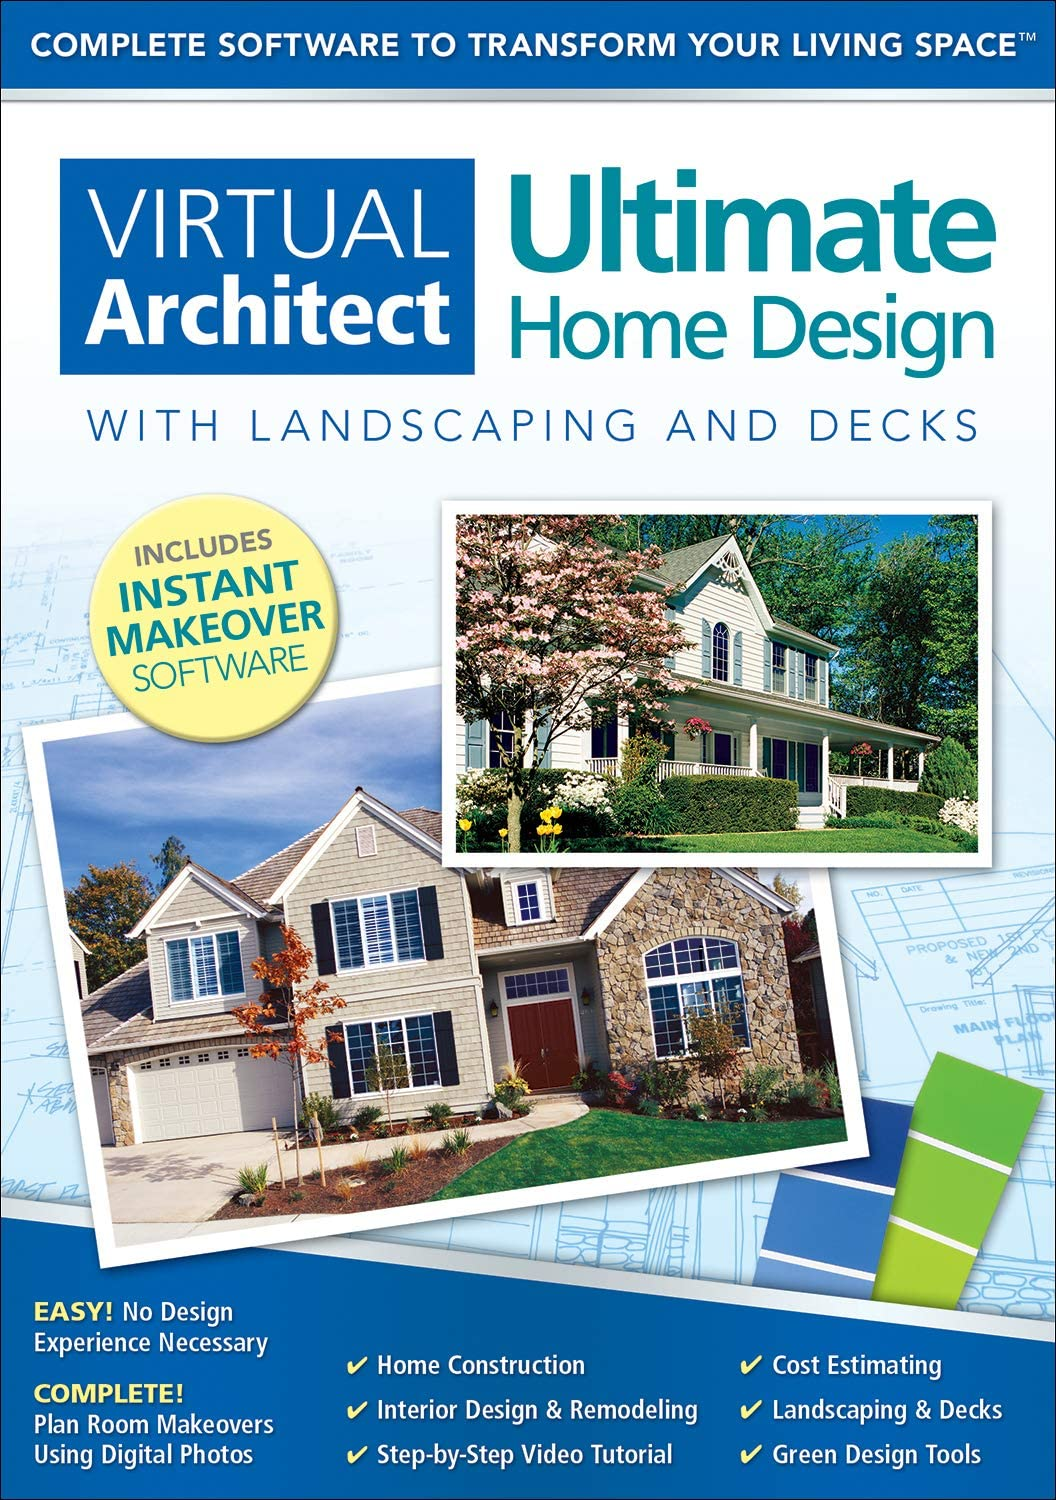 Virtual Architect Ultimate Home Design with Landscaping and Decks 9.0 [Download]